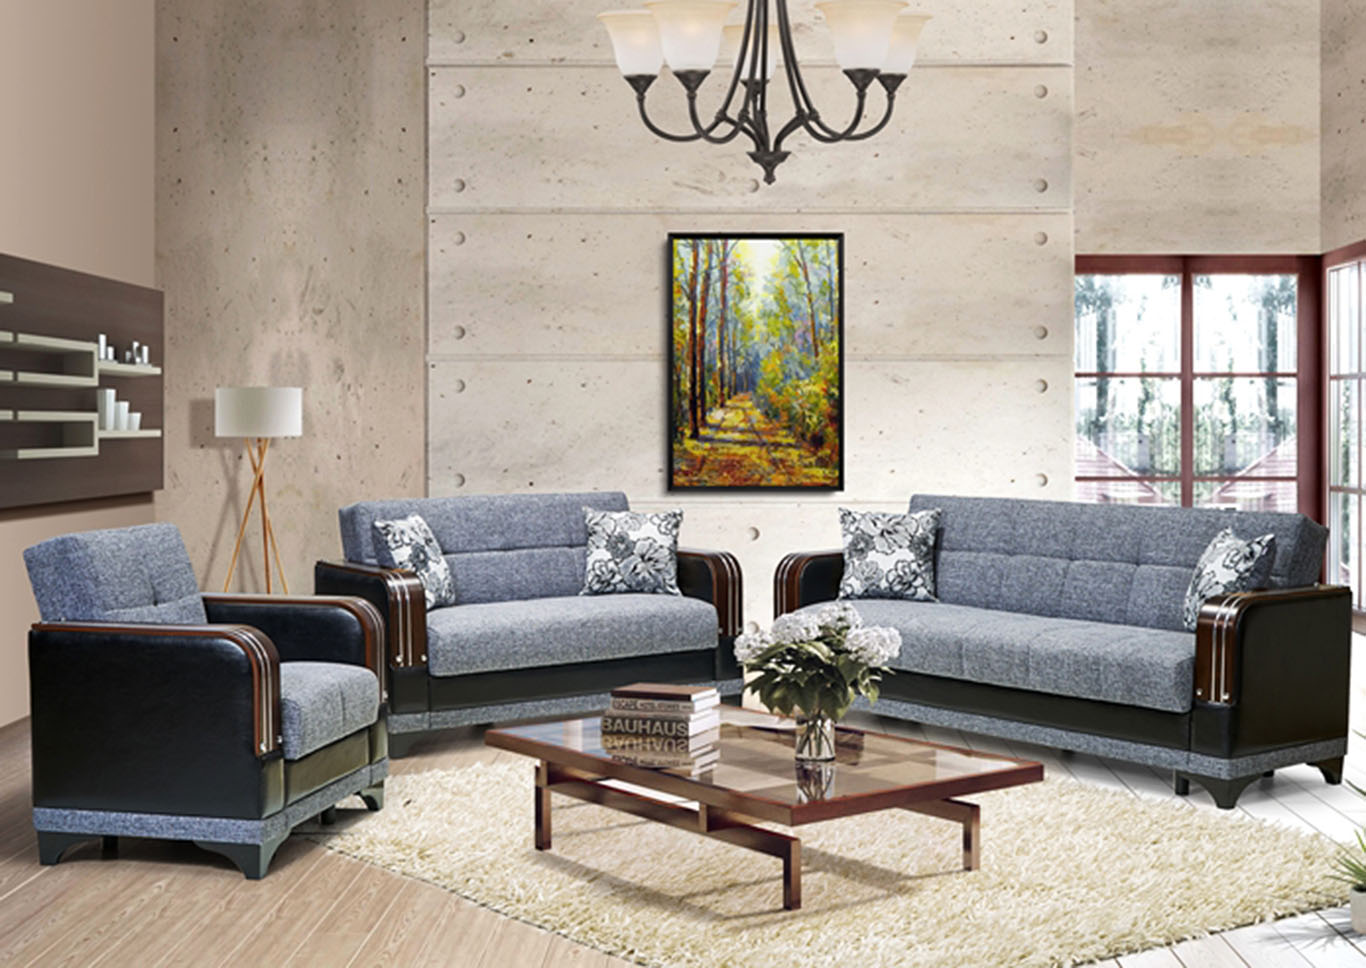 Almira Gray Polyester Love Seat,CasaMode Functional Furniture